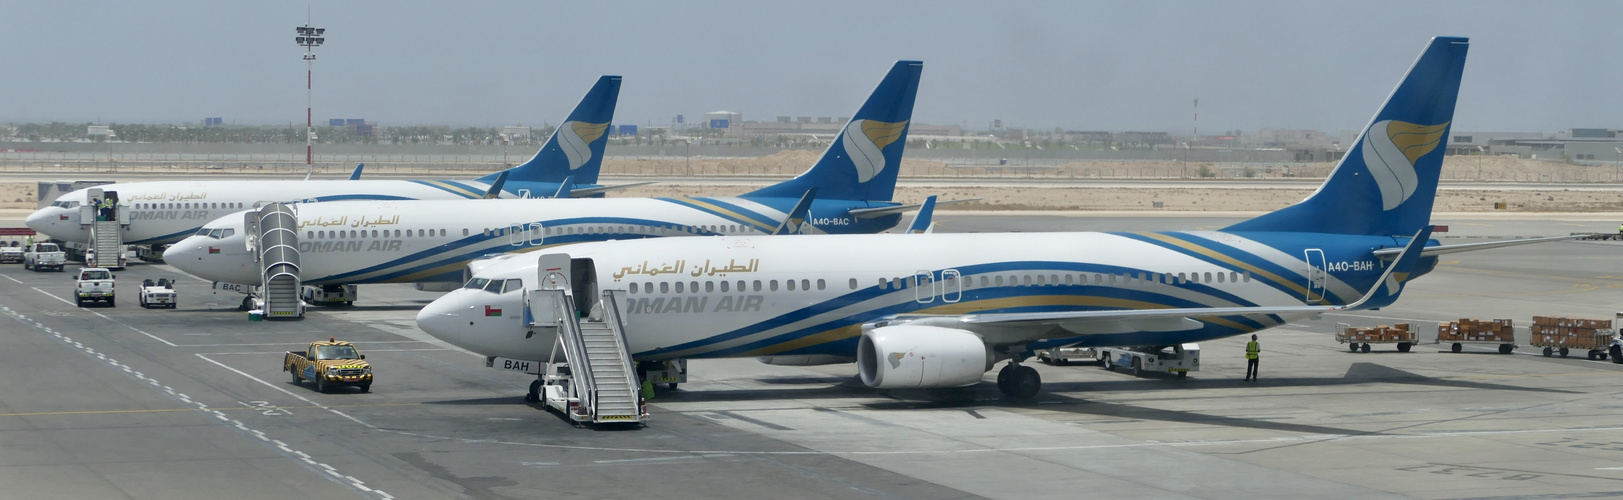 B737-Parade in Muscat